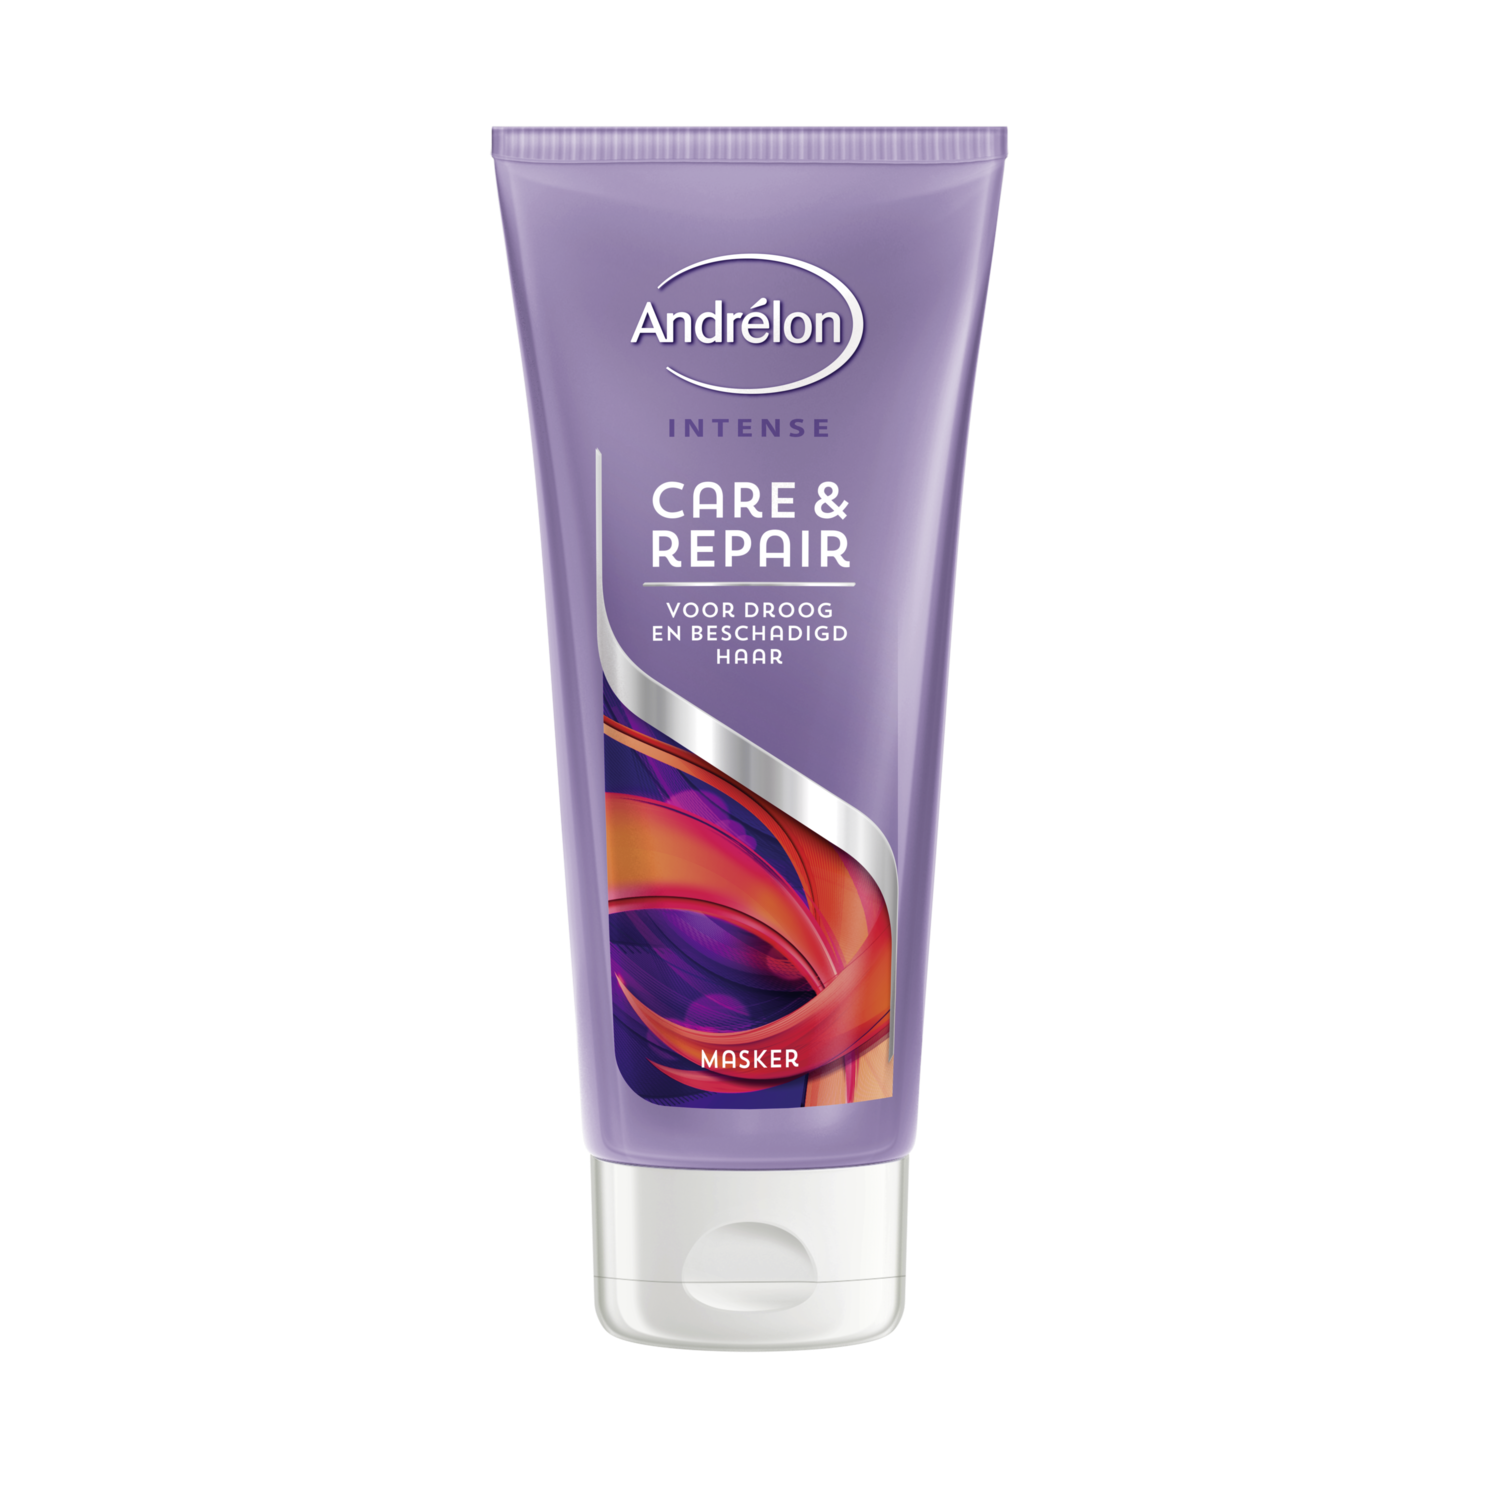 Andrelon Intense Care Repair Masker 180ml 8710447321621